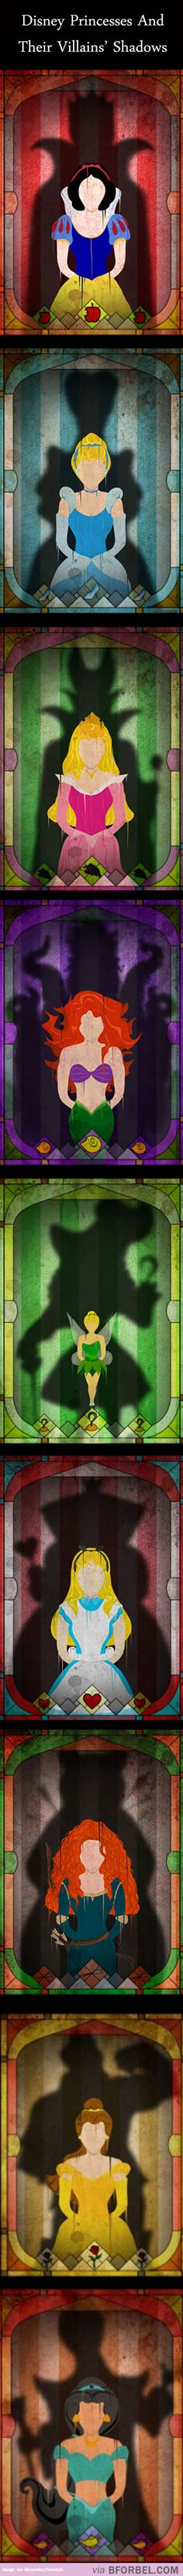 To bad Tinkerbell and Alice aren't even related to any royals.... :/